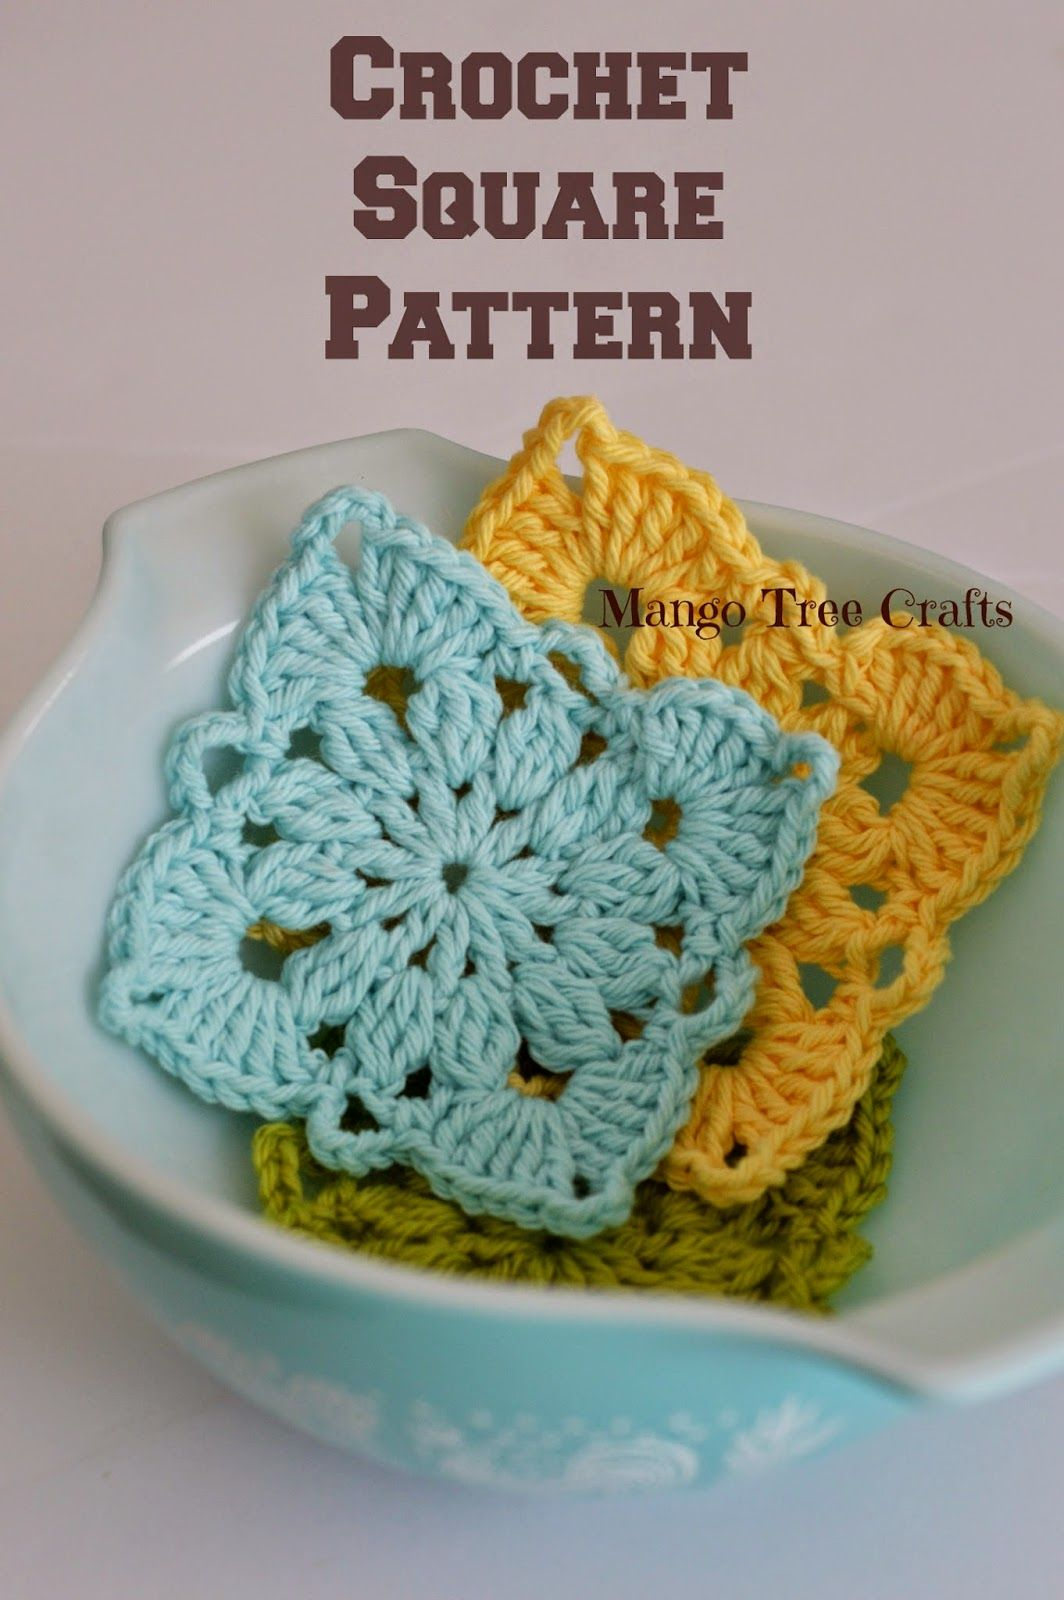 Mango Tree Crafts: Crochet Square Pattern and Photo Tutorial ...